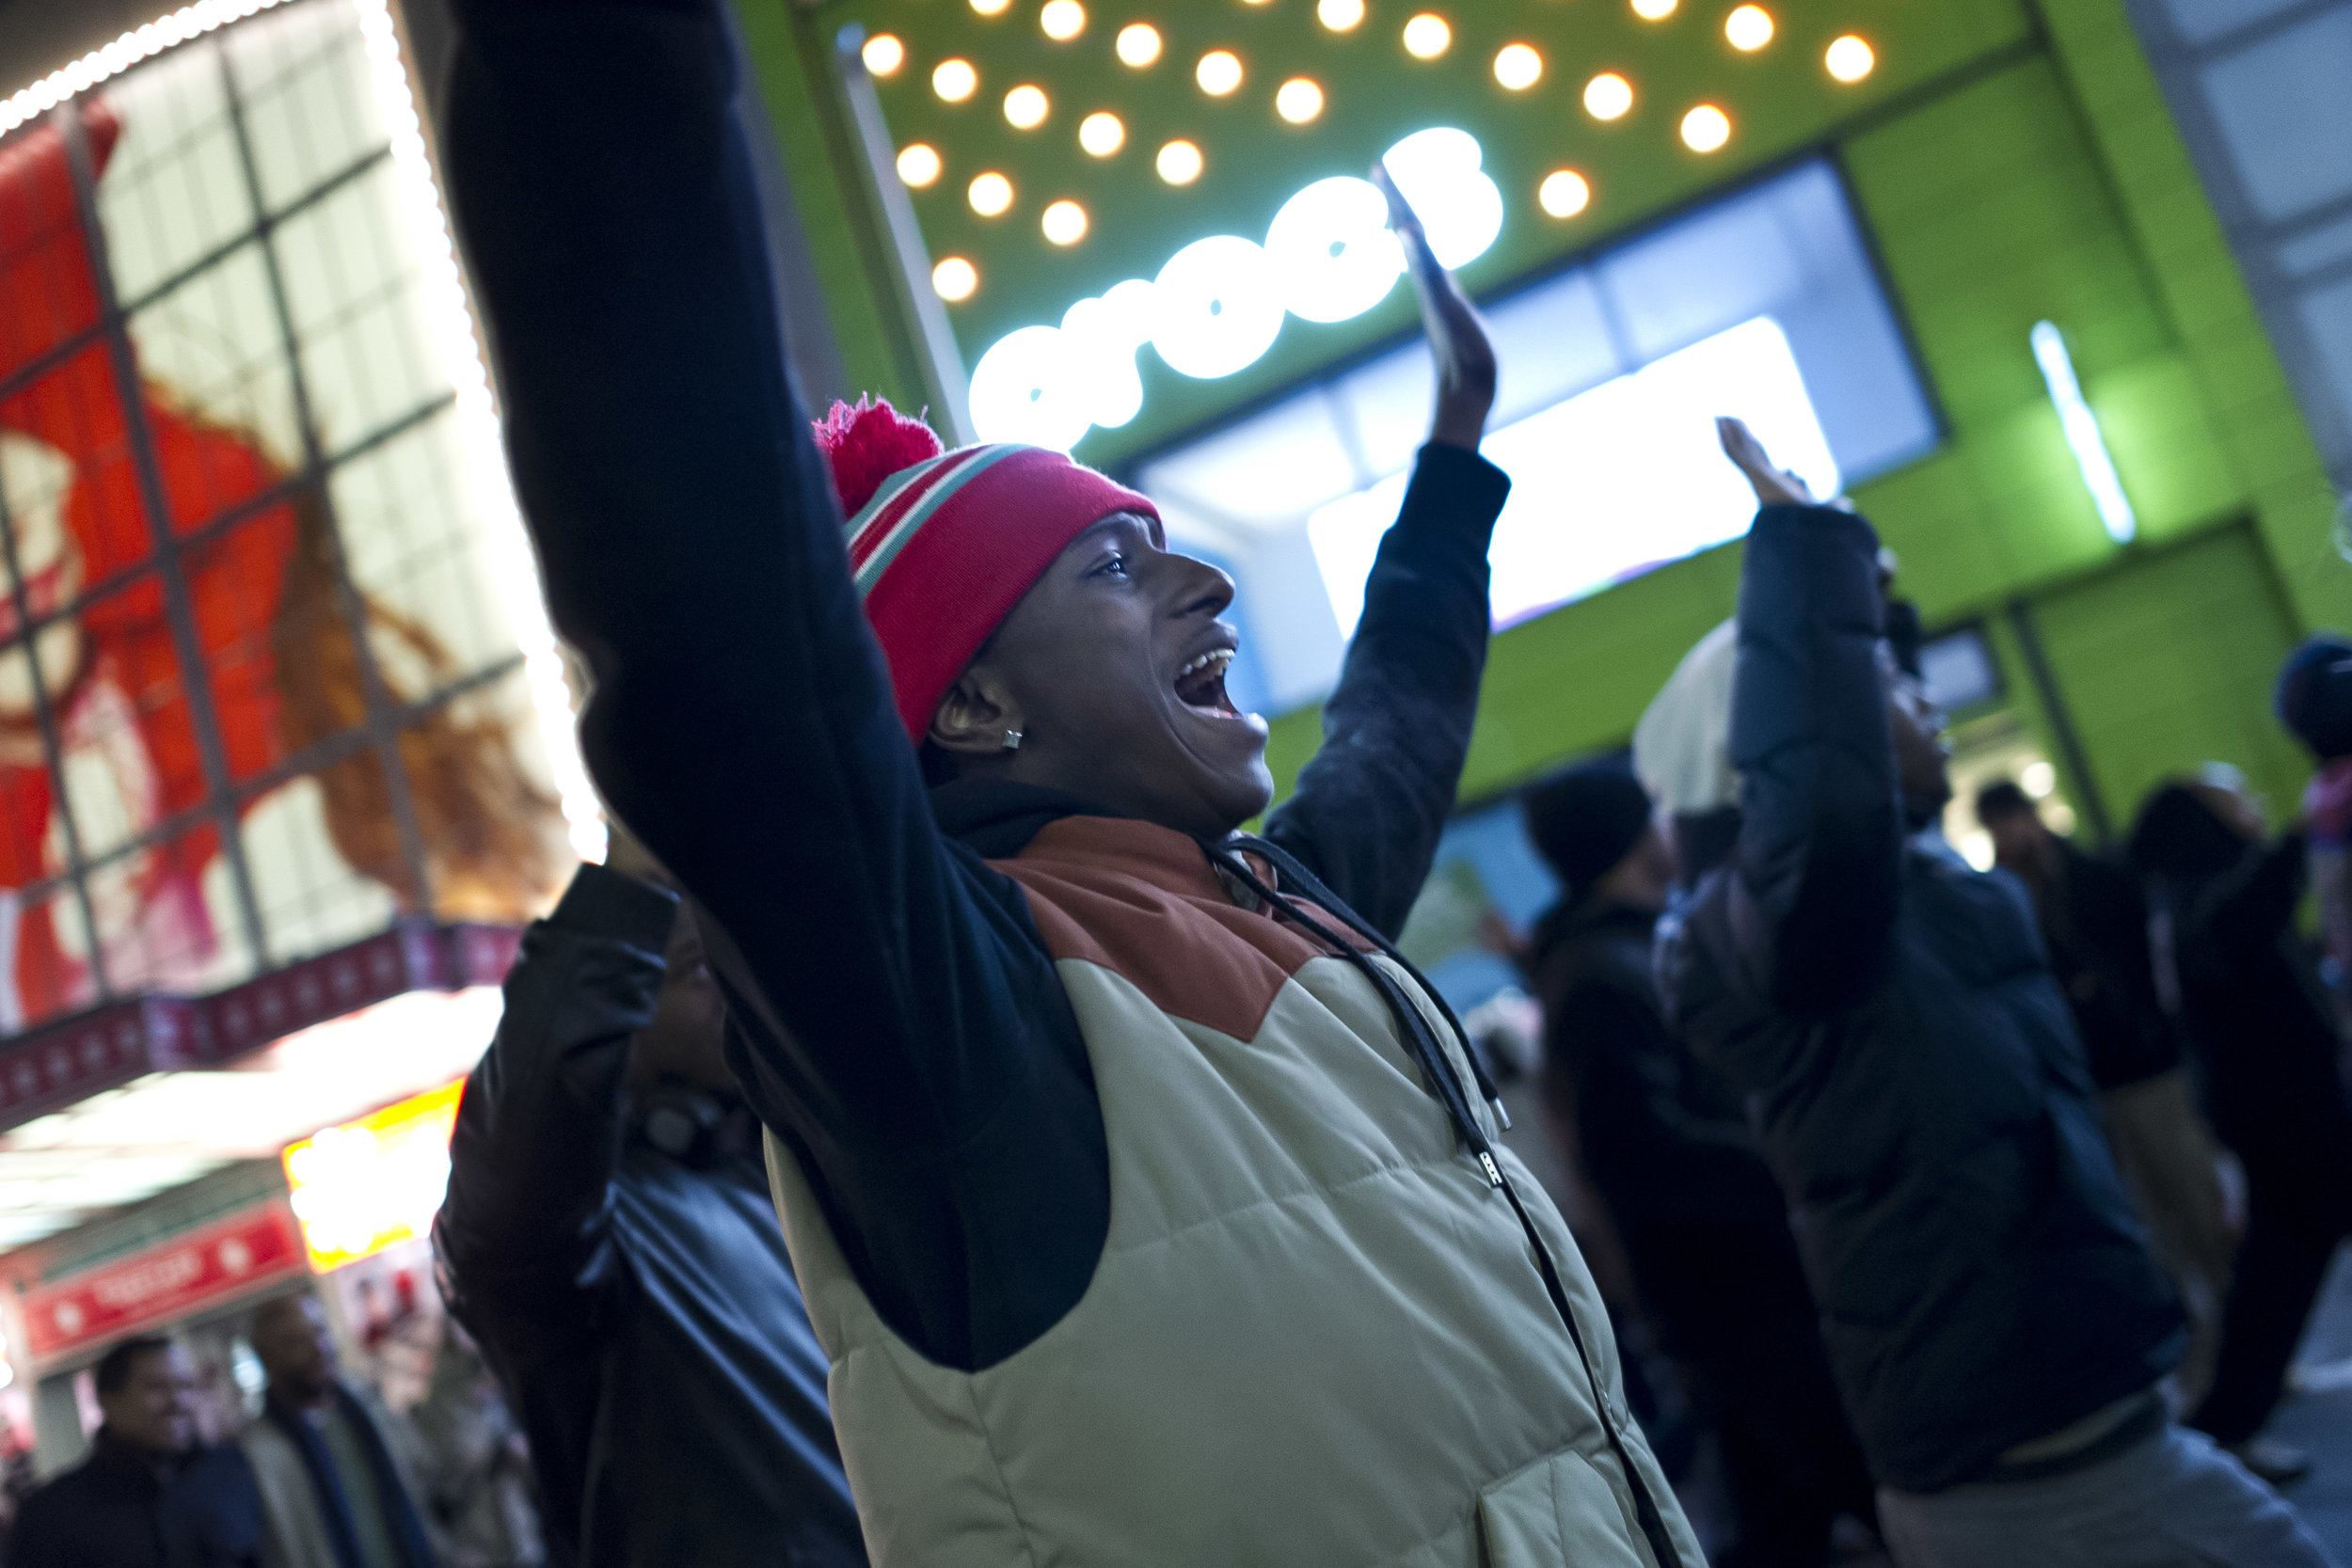 Demonstrators march on 34th street near Penn Station on December 4th, 2014. Weeks of protest followed a Staten Island grand jury's decision on December 3rd 2014 not to indict Officer Daniel Pantaleo in the killing of Eric Garner.